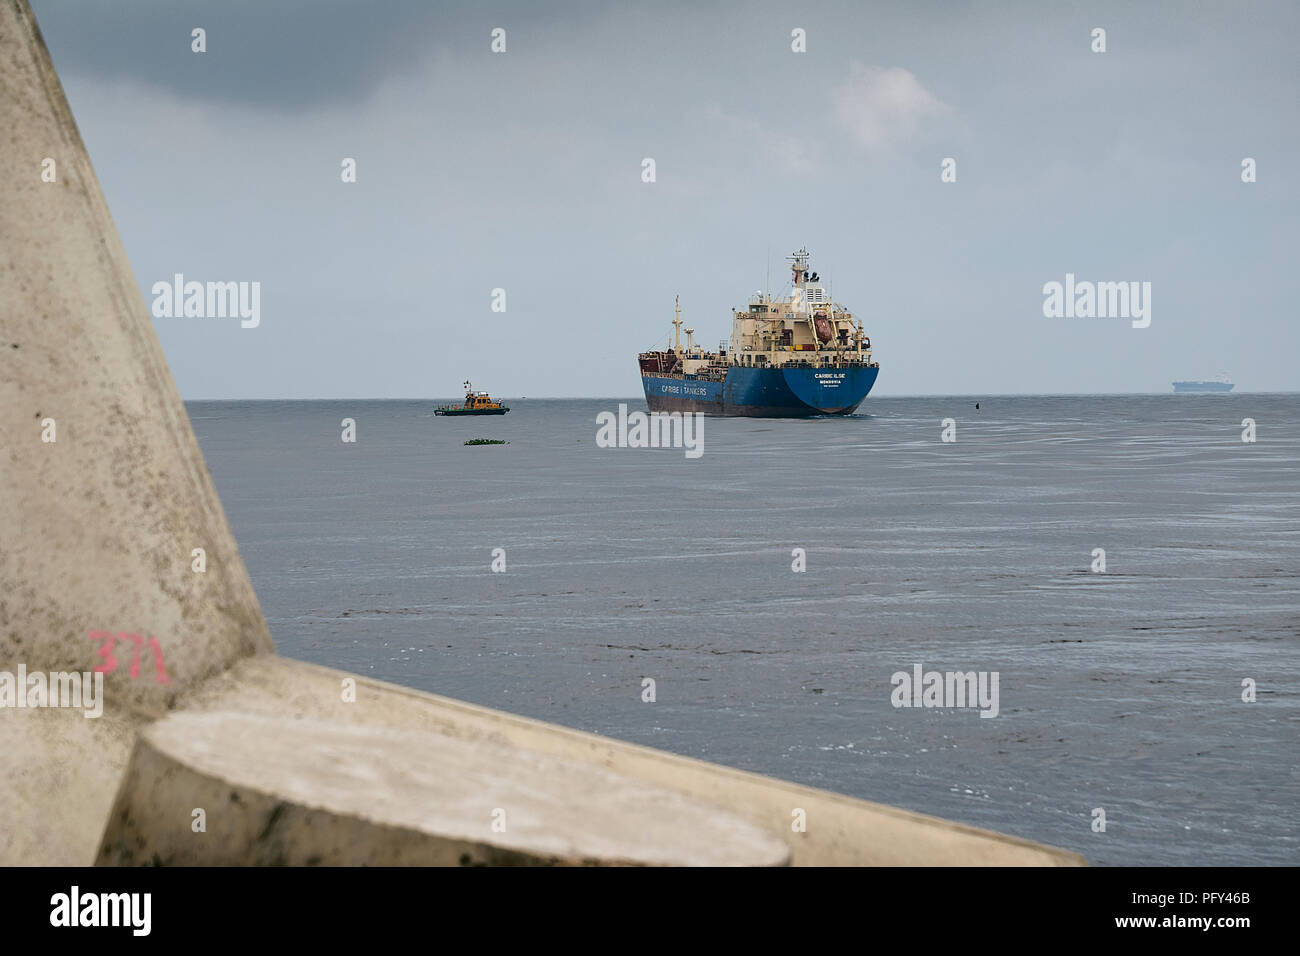 COATZACOALCOS, VER/MEXICO - AUG 18, 2018:  Maritime pilot guiding the Caribe Ilse Oil & Chemical tanker, at the river  mouth, a tetrapod in foreground - Stock Image